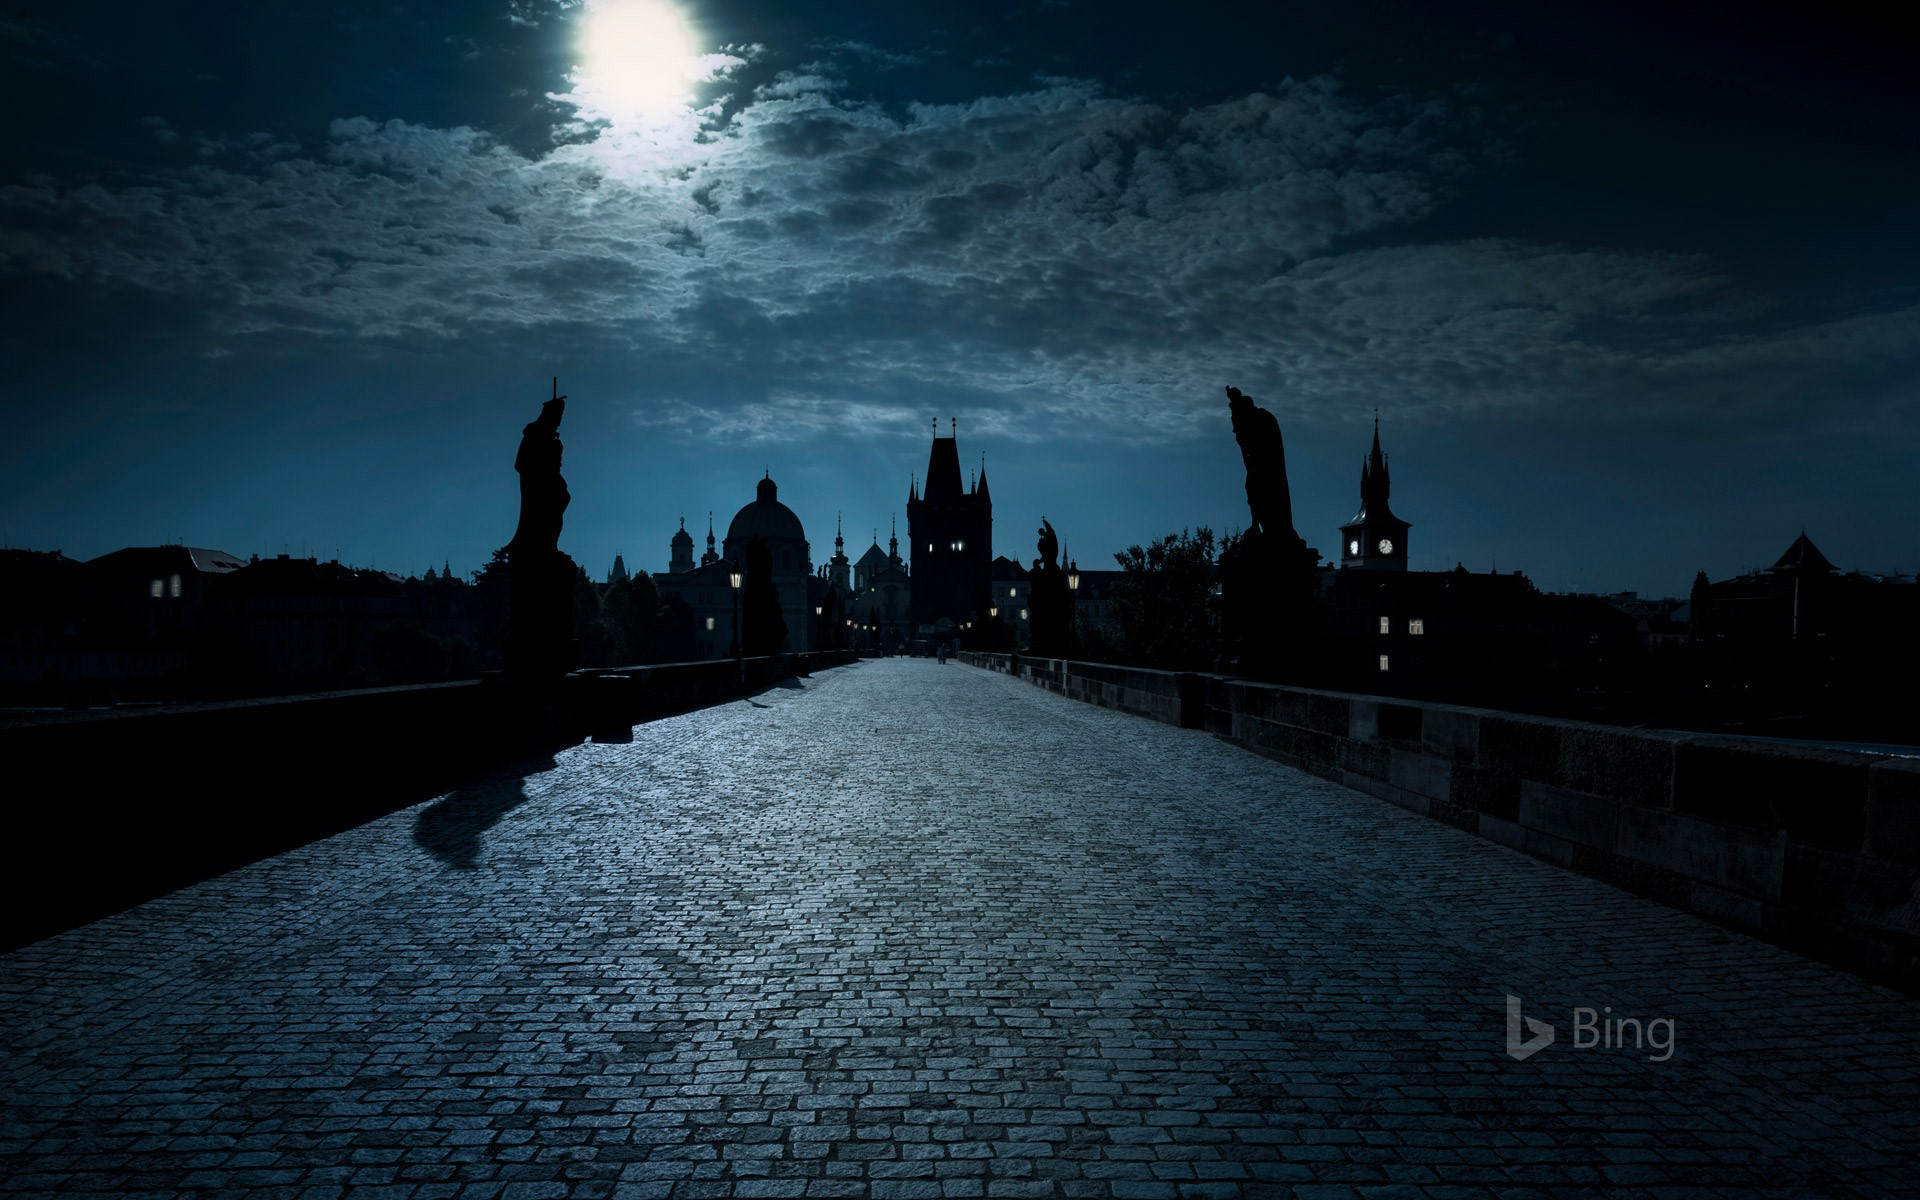 Charles Bridge over the Vltava River in Prague, Czech Republic